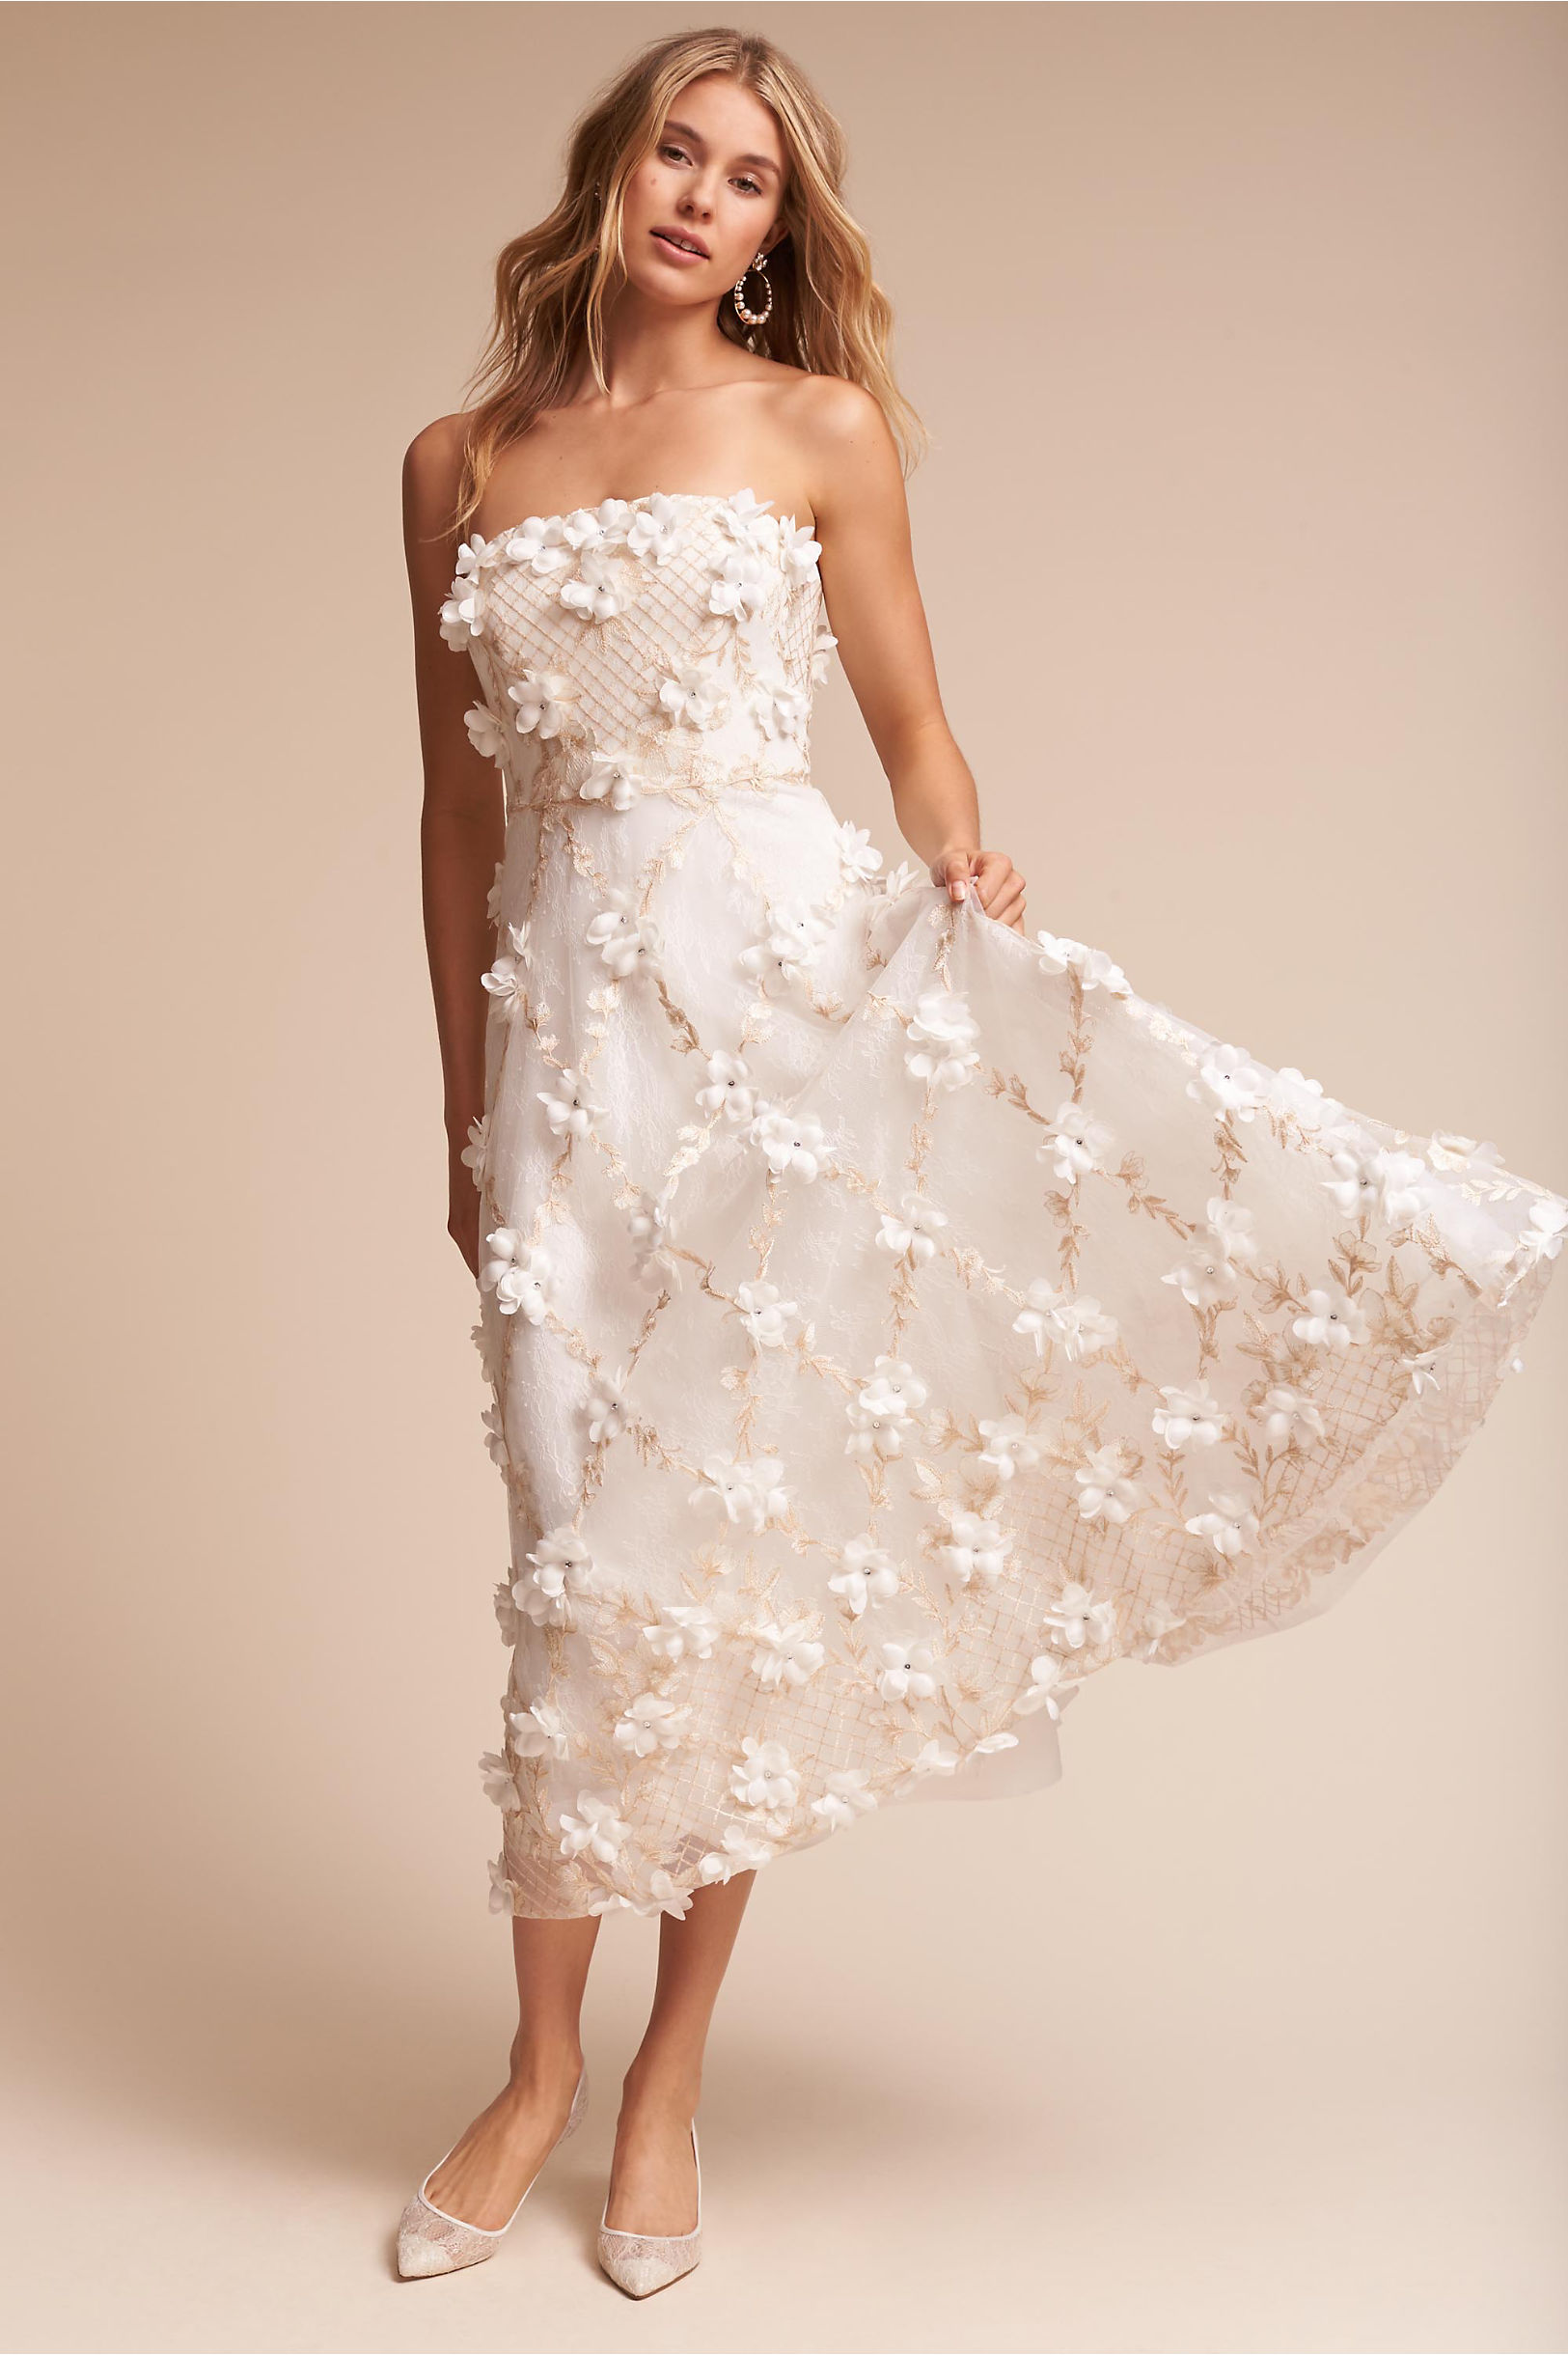 Duchess Gown in Sale | BHLDN